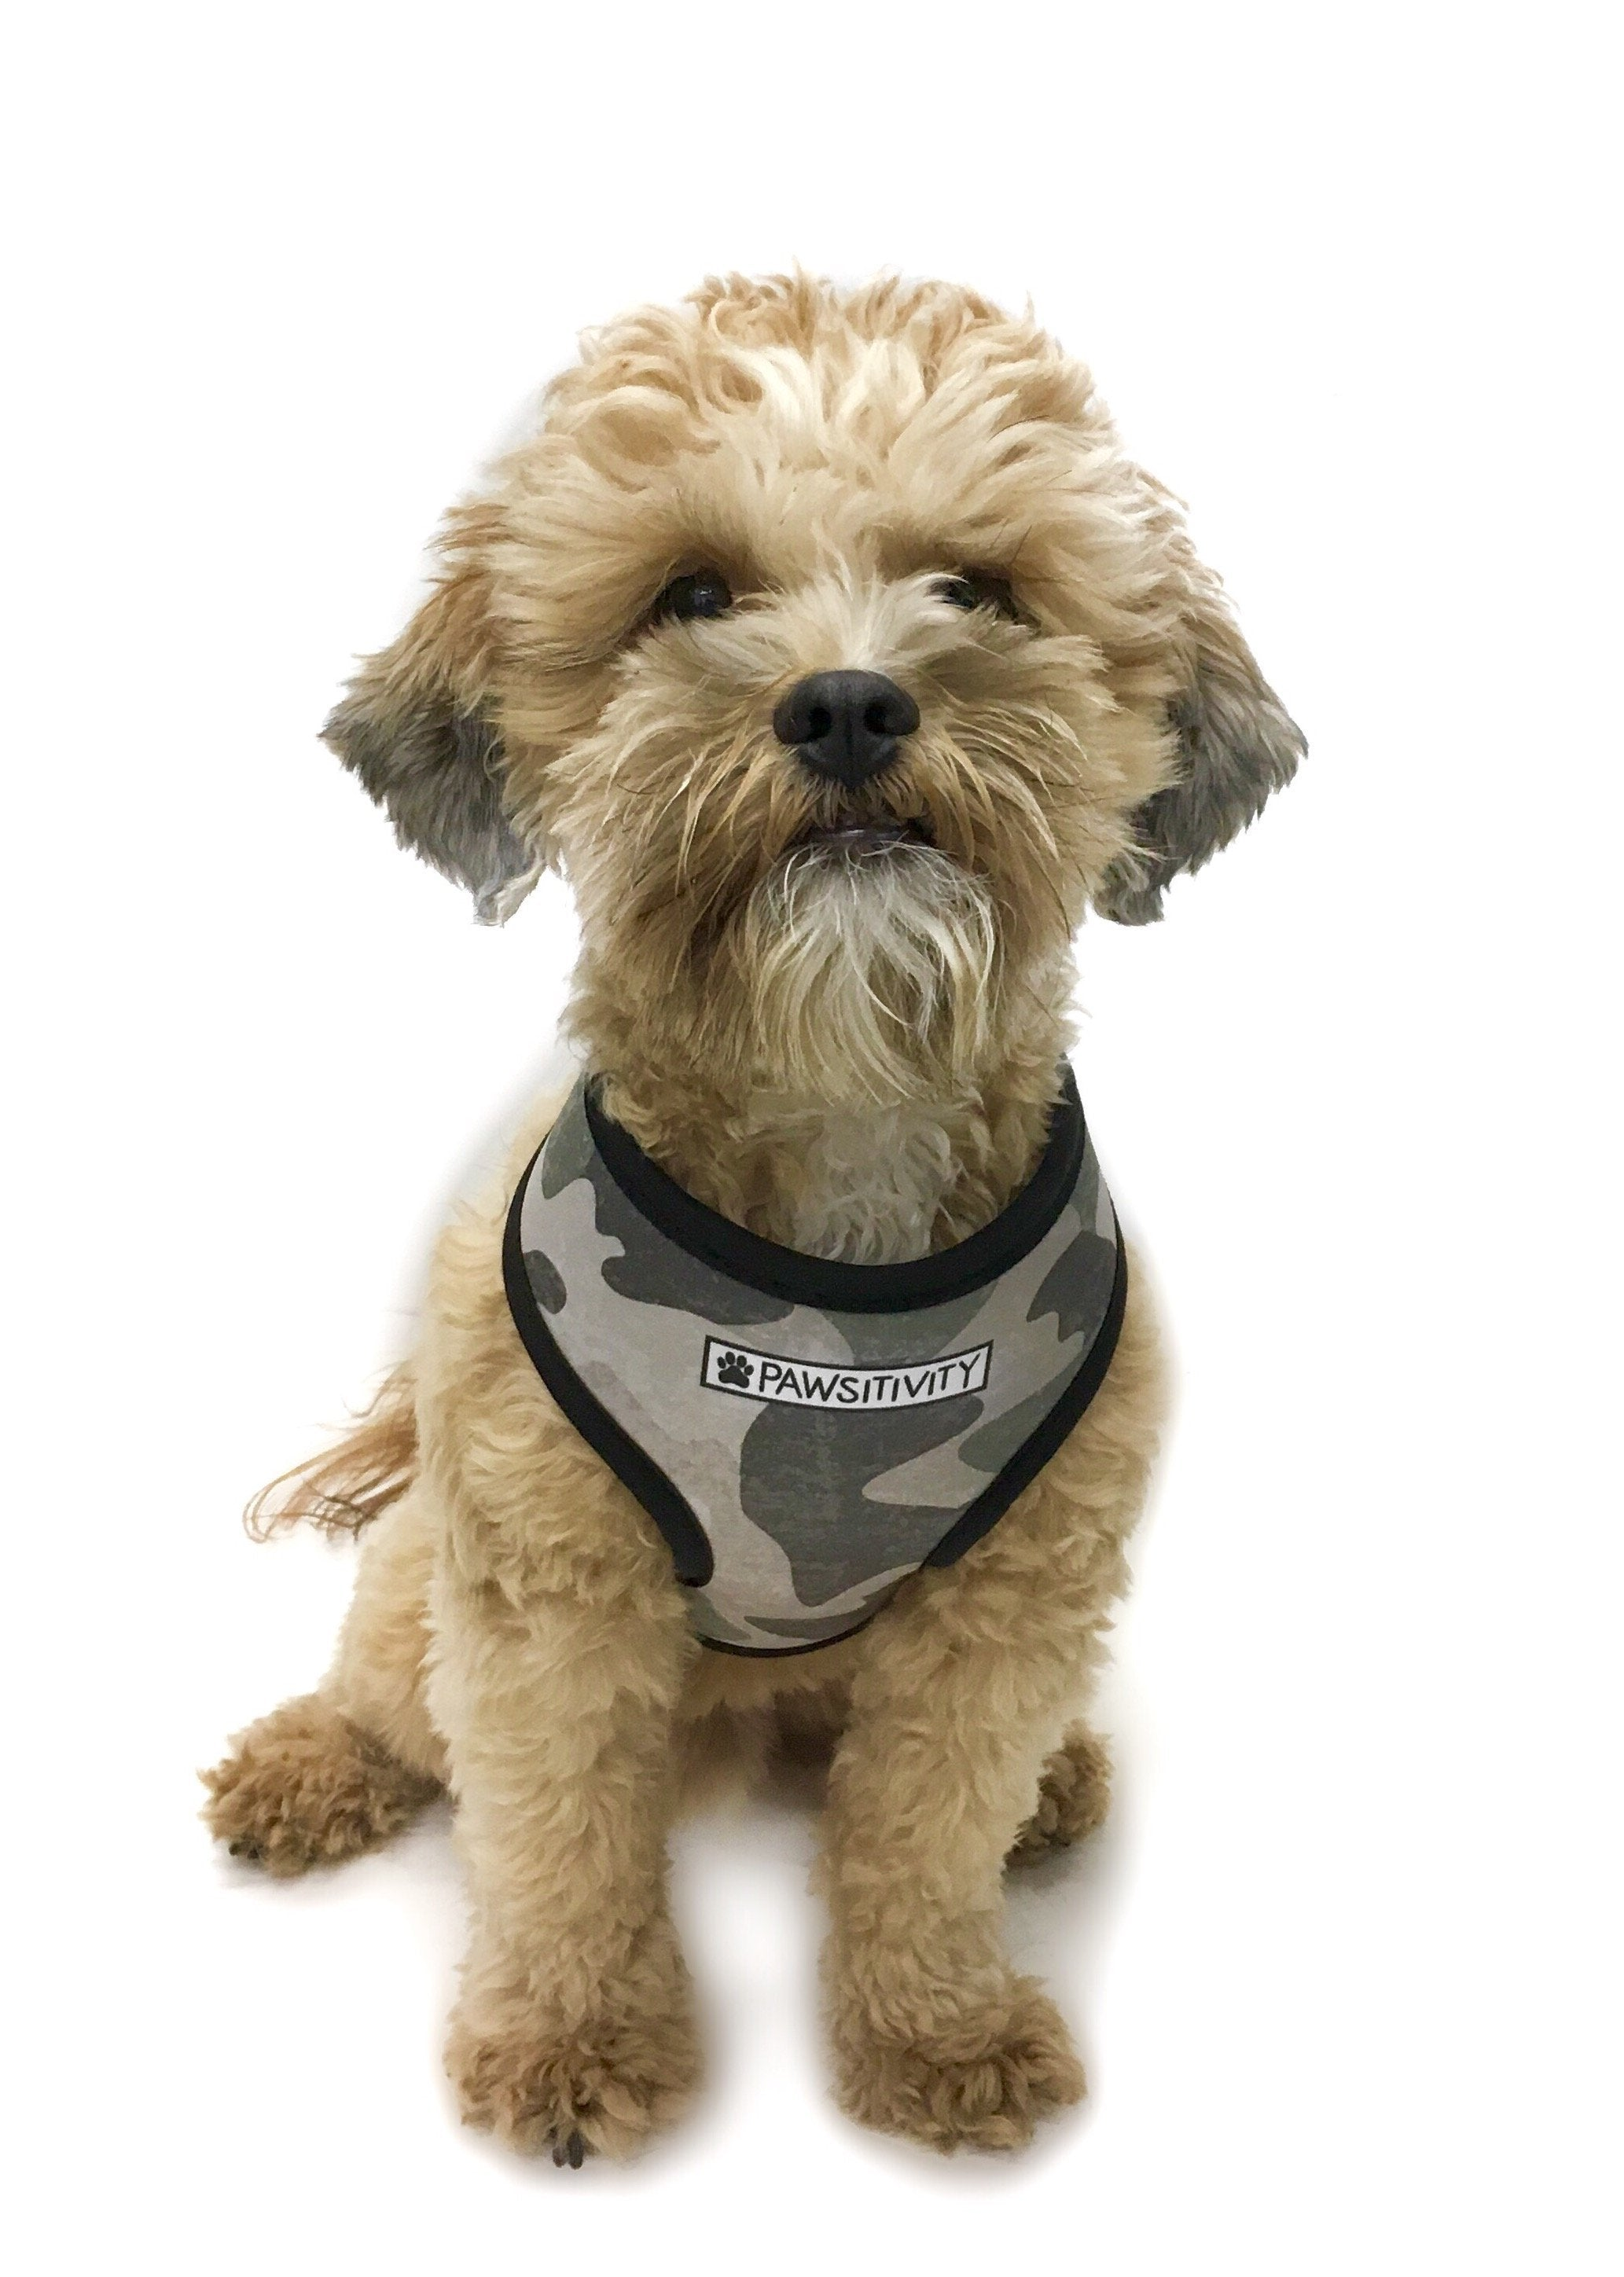 Pawsitivity Reversible Harness - Buffalo Plaid & Camo